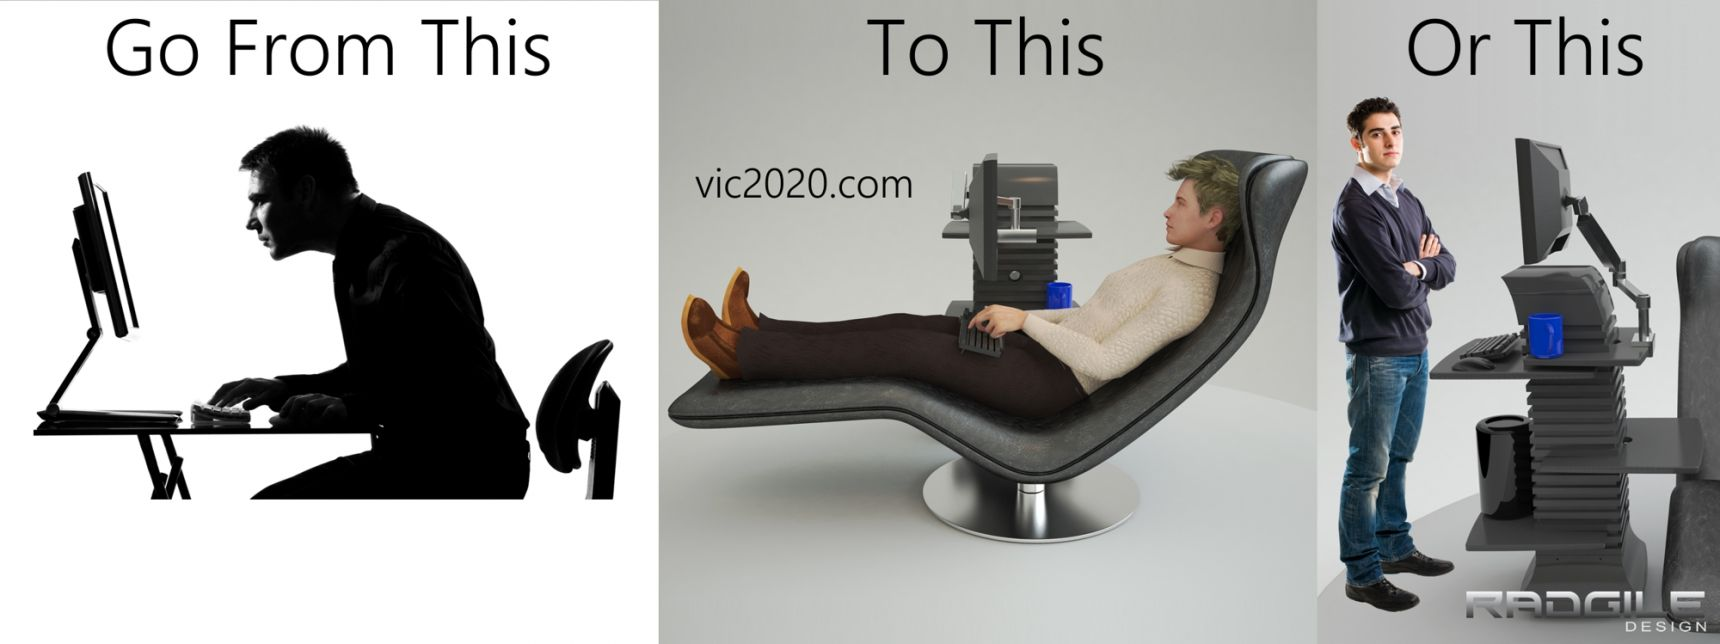 The Radgile Vic 2020 can accommodate both sitting and standing scenarios.